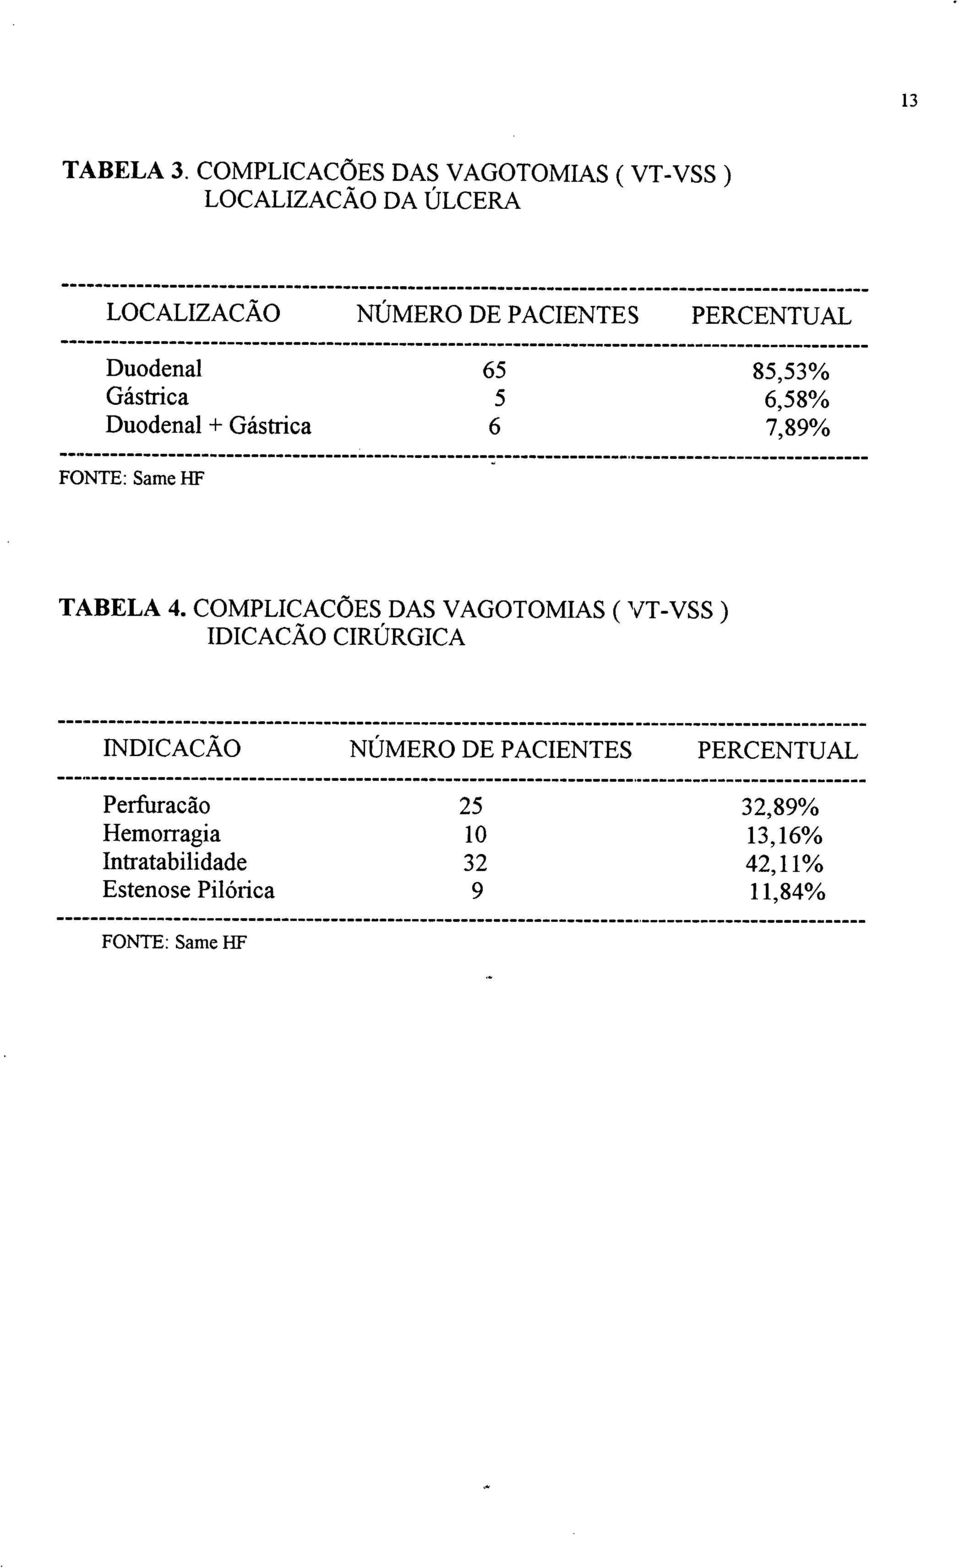 Duodenal 65 85,53% Gástrica 5 6,58% Duodenal + Gástrica 6 7,89% FONTE: Same I-IF TABELA 4.